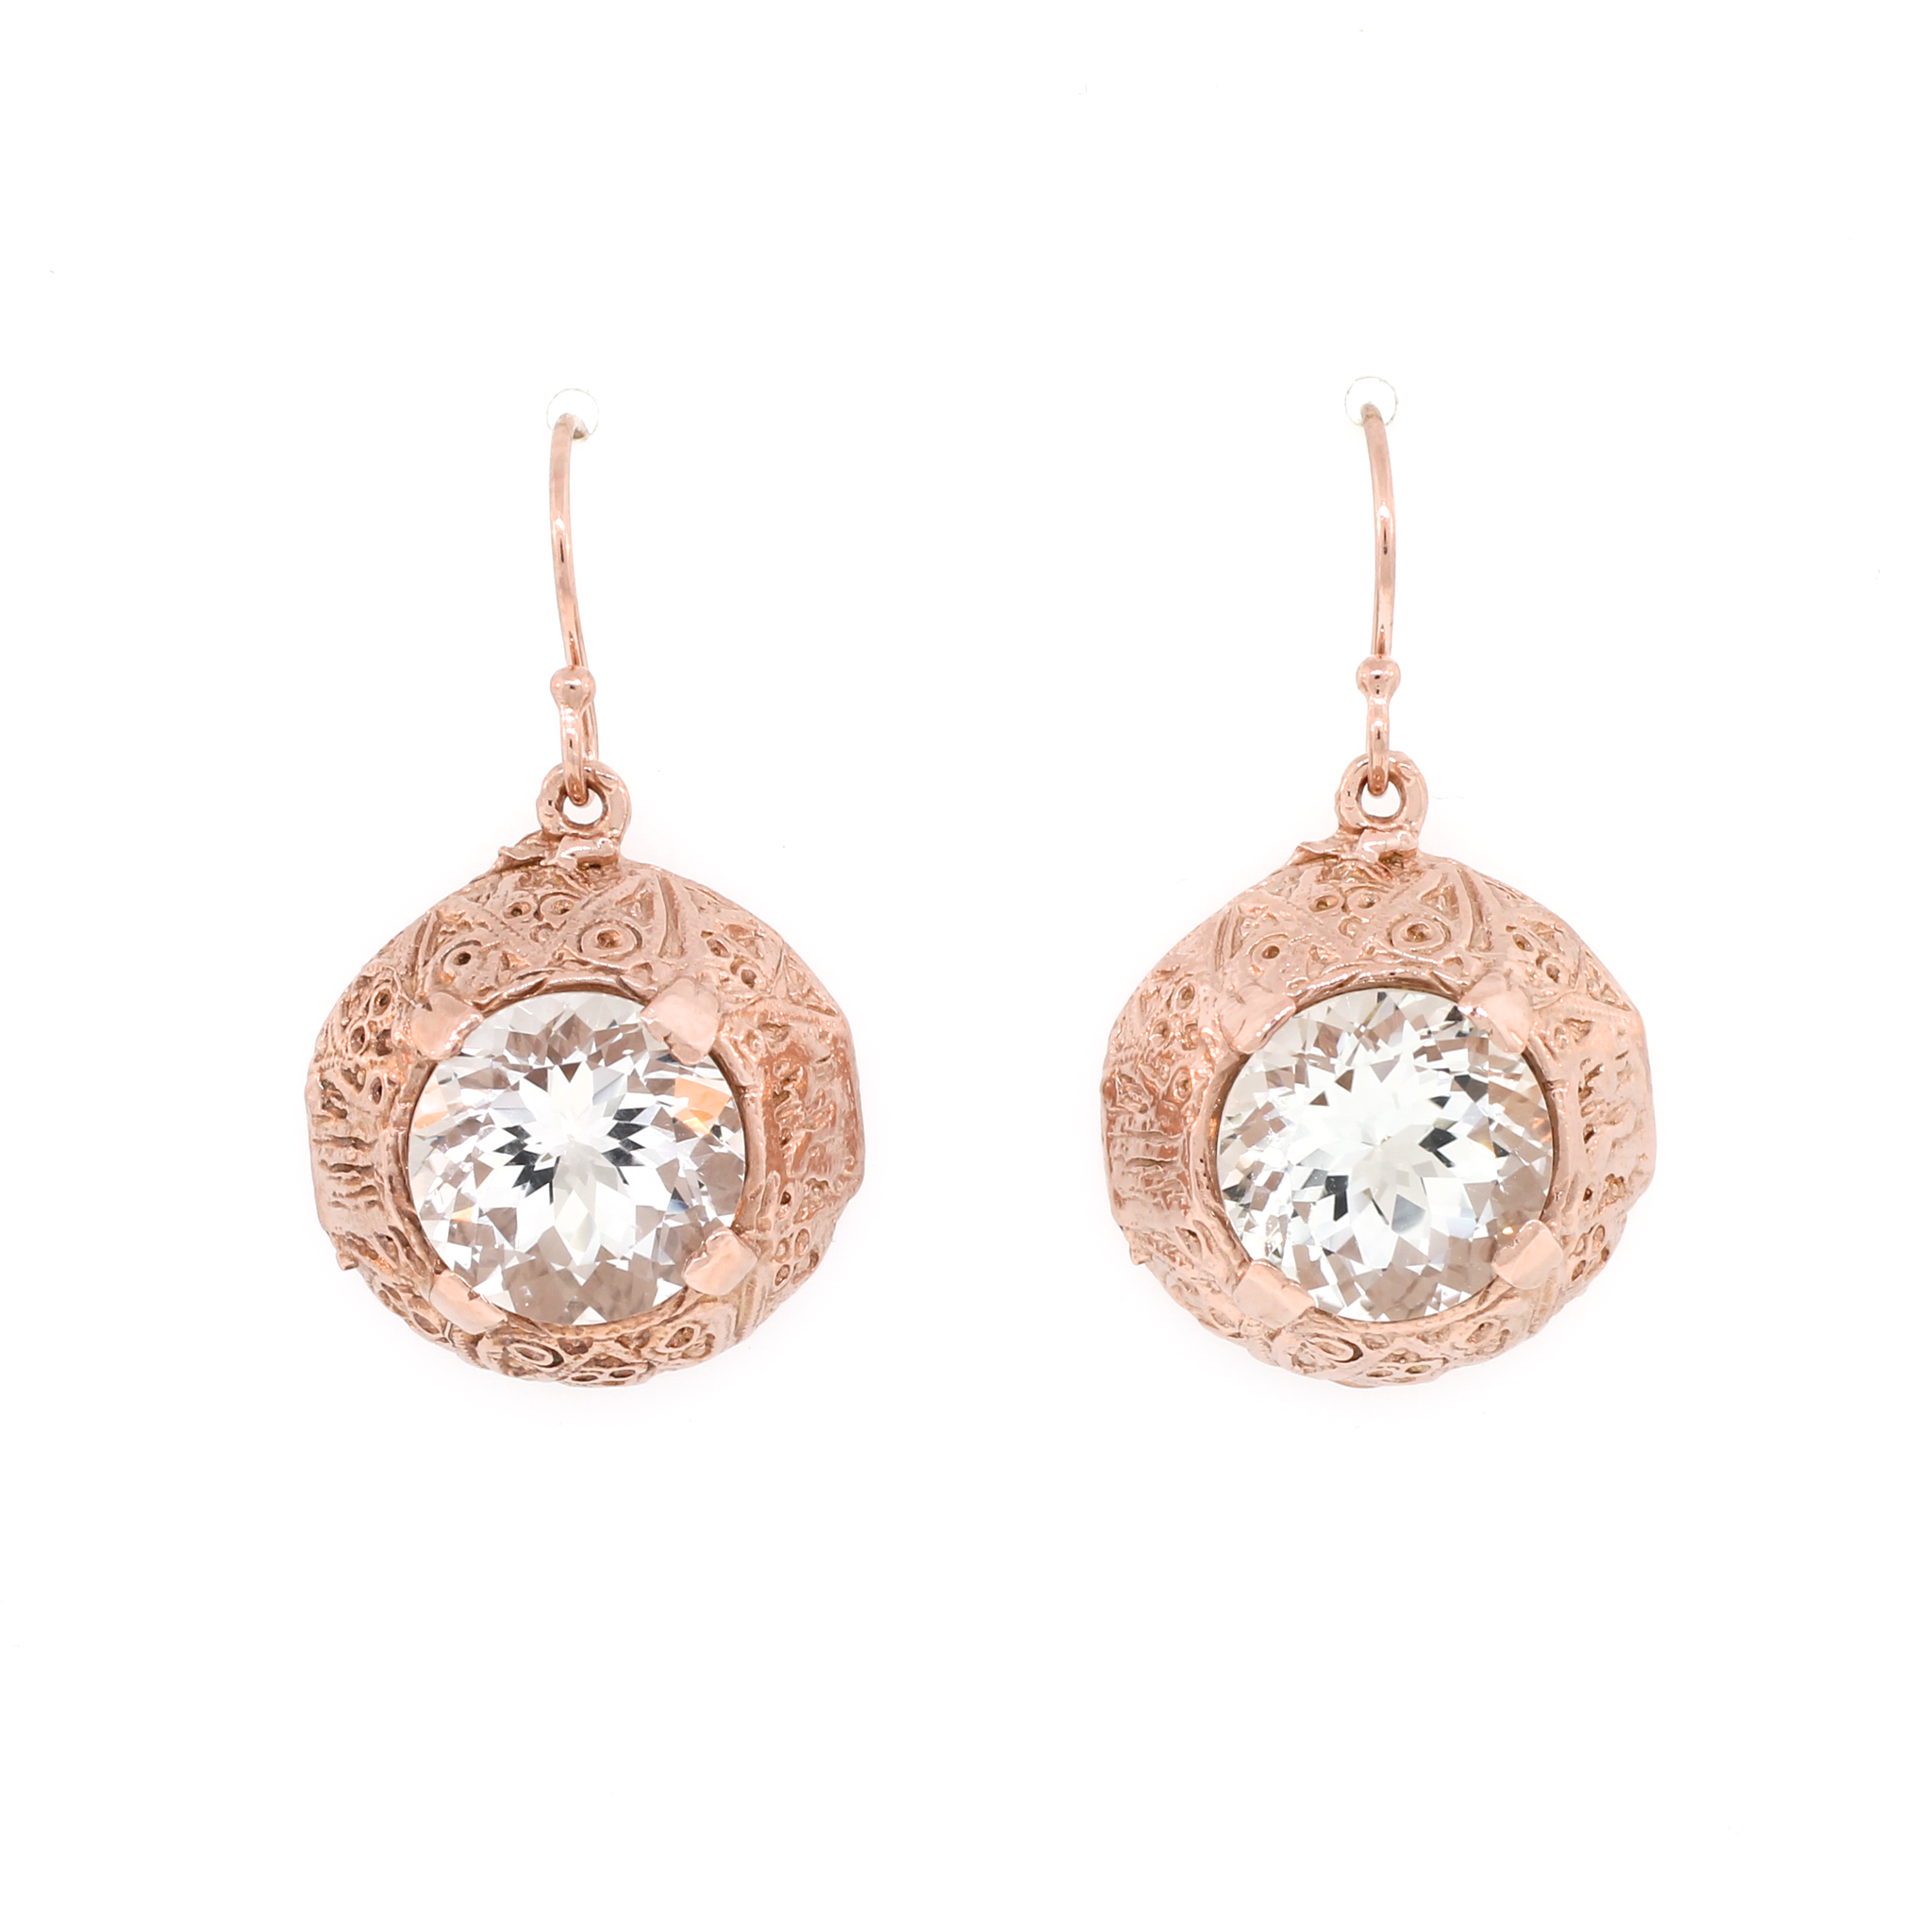 shop in miami diamond jewelry santayana spanish dangling gold earrings white dangle custom